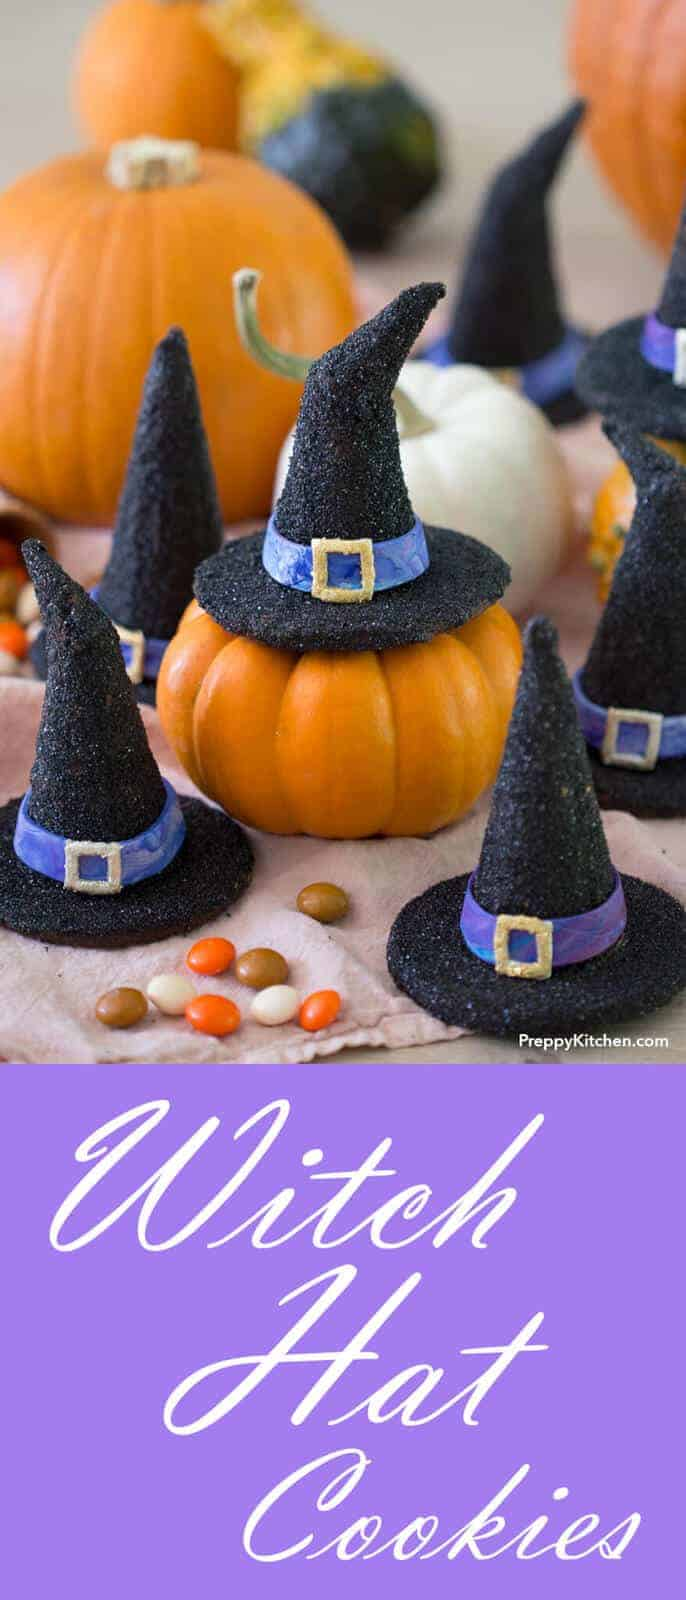 These witch hat cookies are the perfect treat for Halloween! The bases are delicious chocolate sugar cookies while an ice cream cone is used for the top. Inside they're filled with candy for an extra surprise!